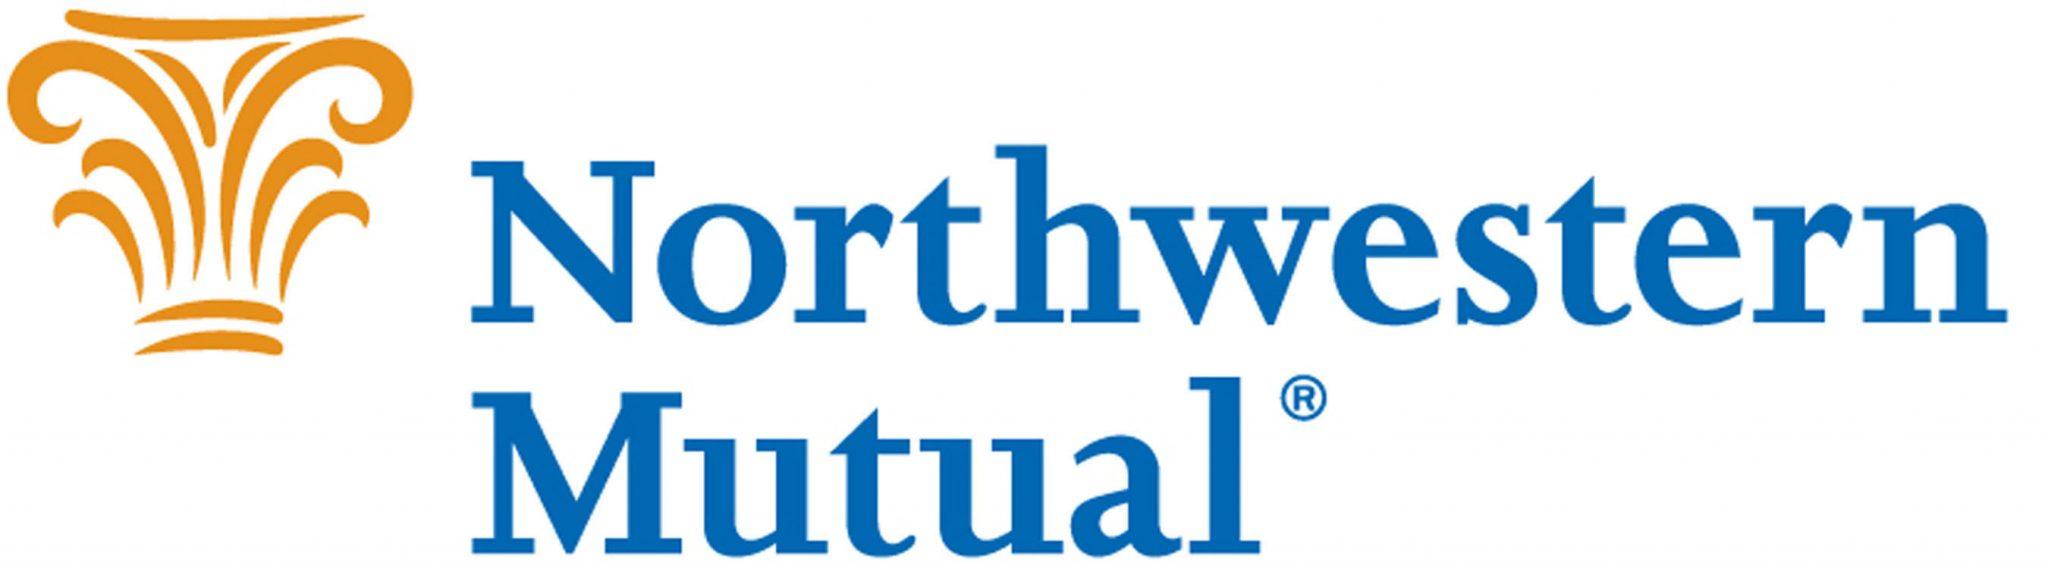 result for northwestern mutual logo png